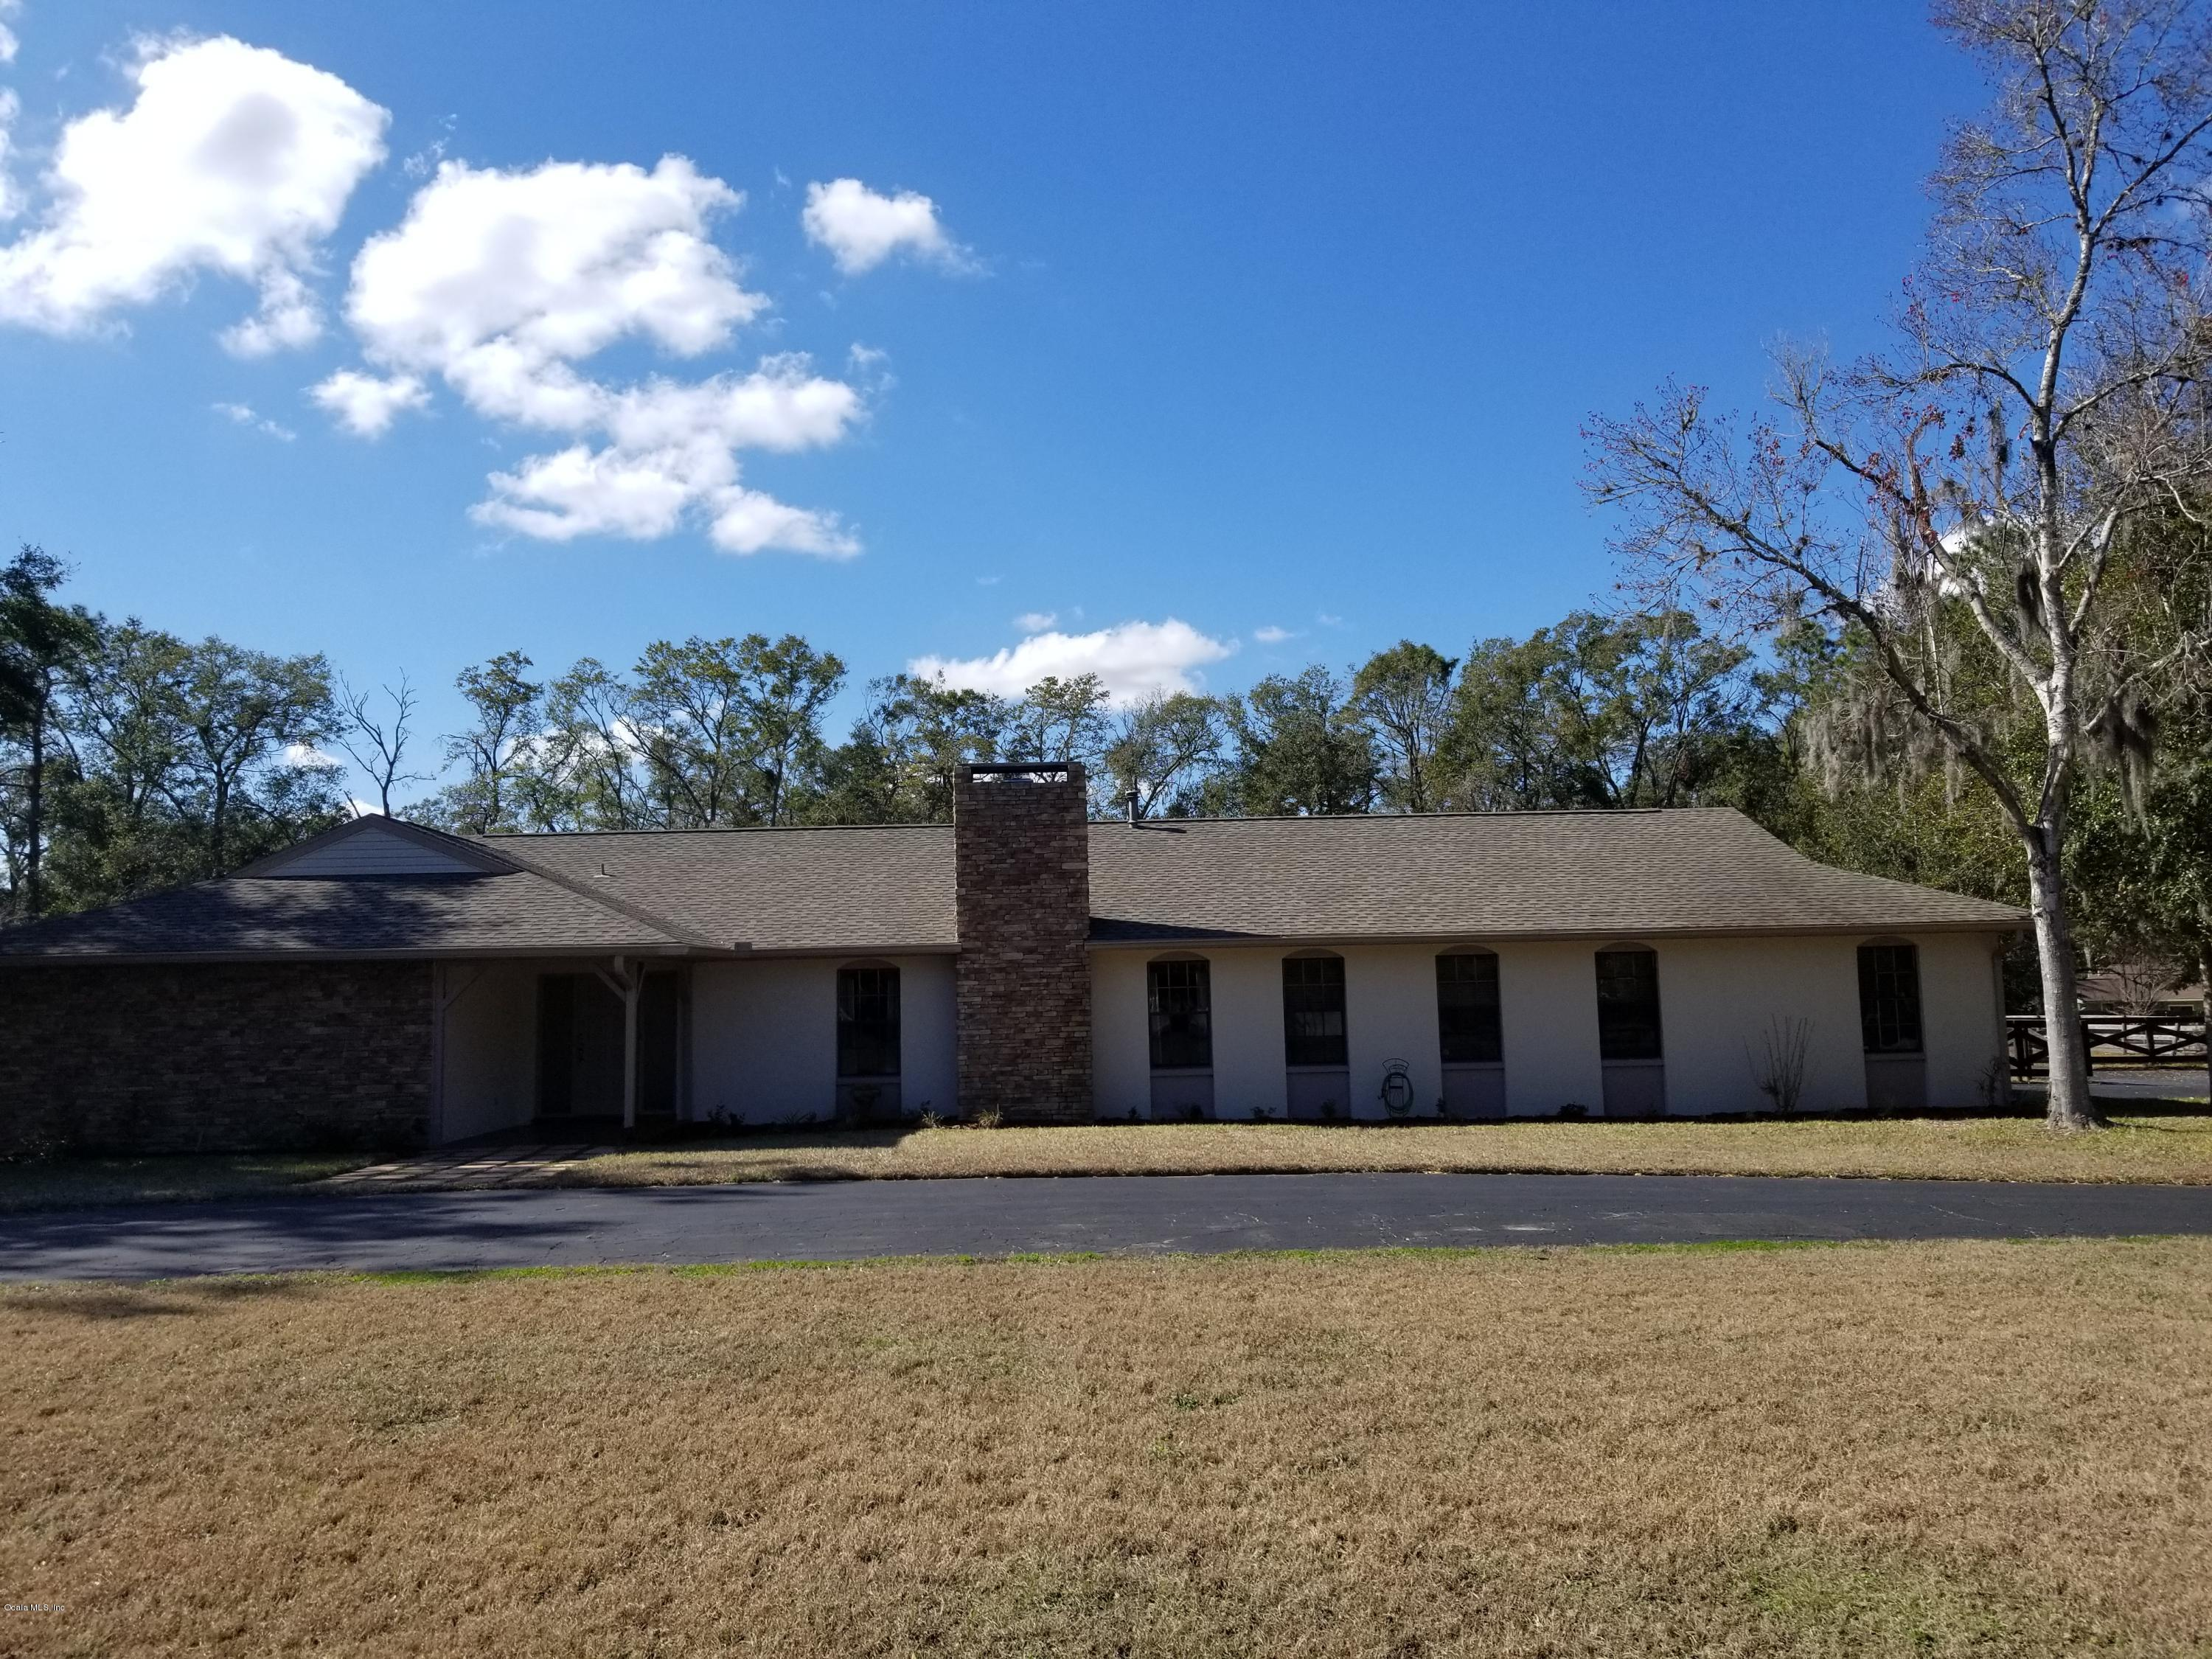 404 SE 48TH AVENUE, OCALA, FL 34471